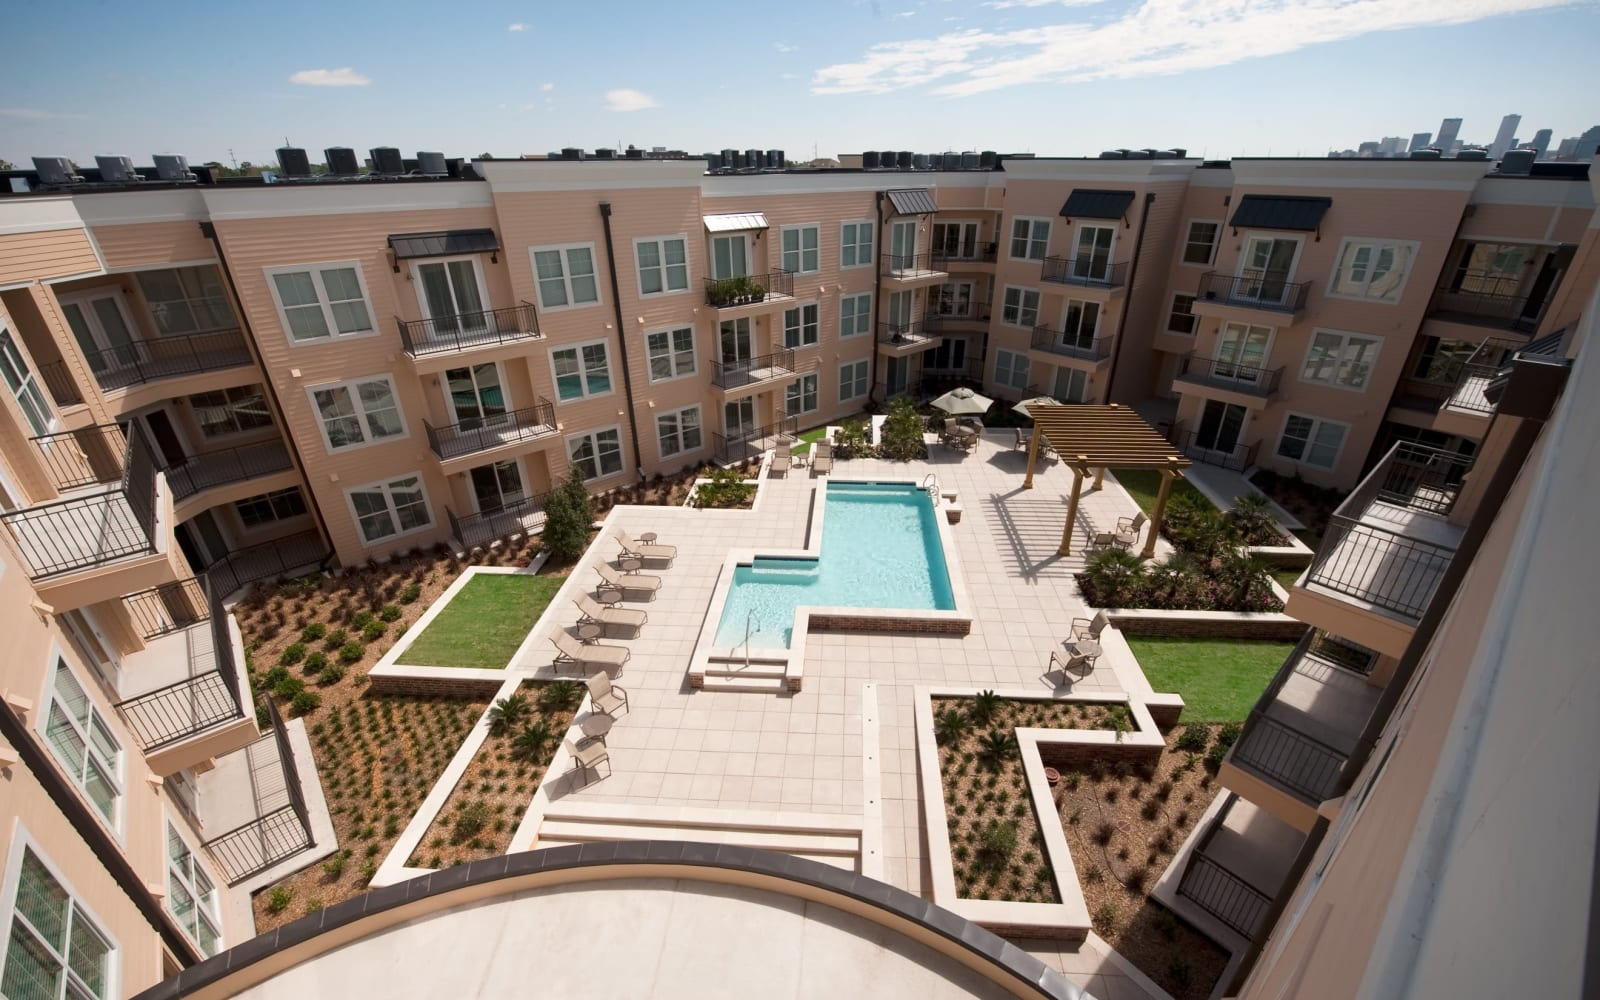 Aerial view of the courtyard and pool at The Preserve in New Orleans, Louisiana